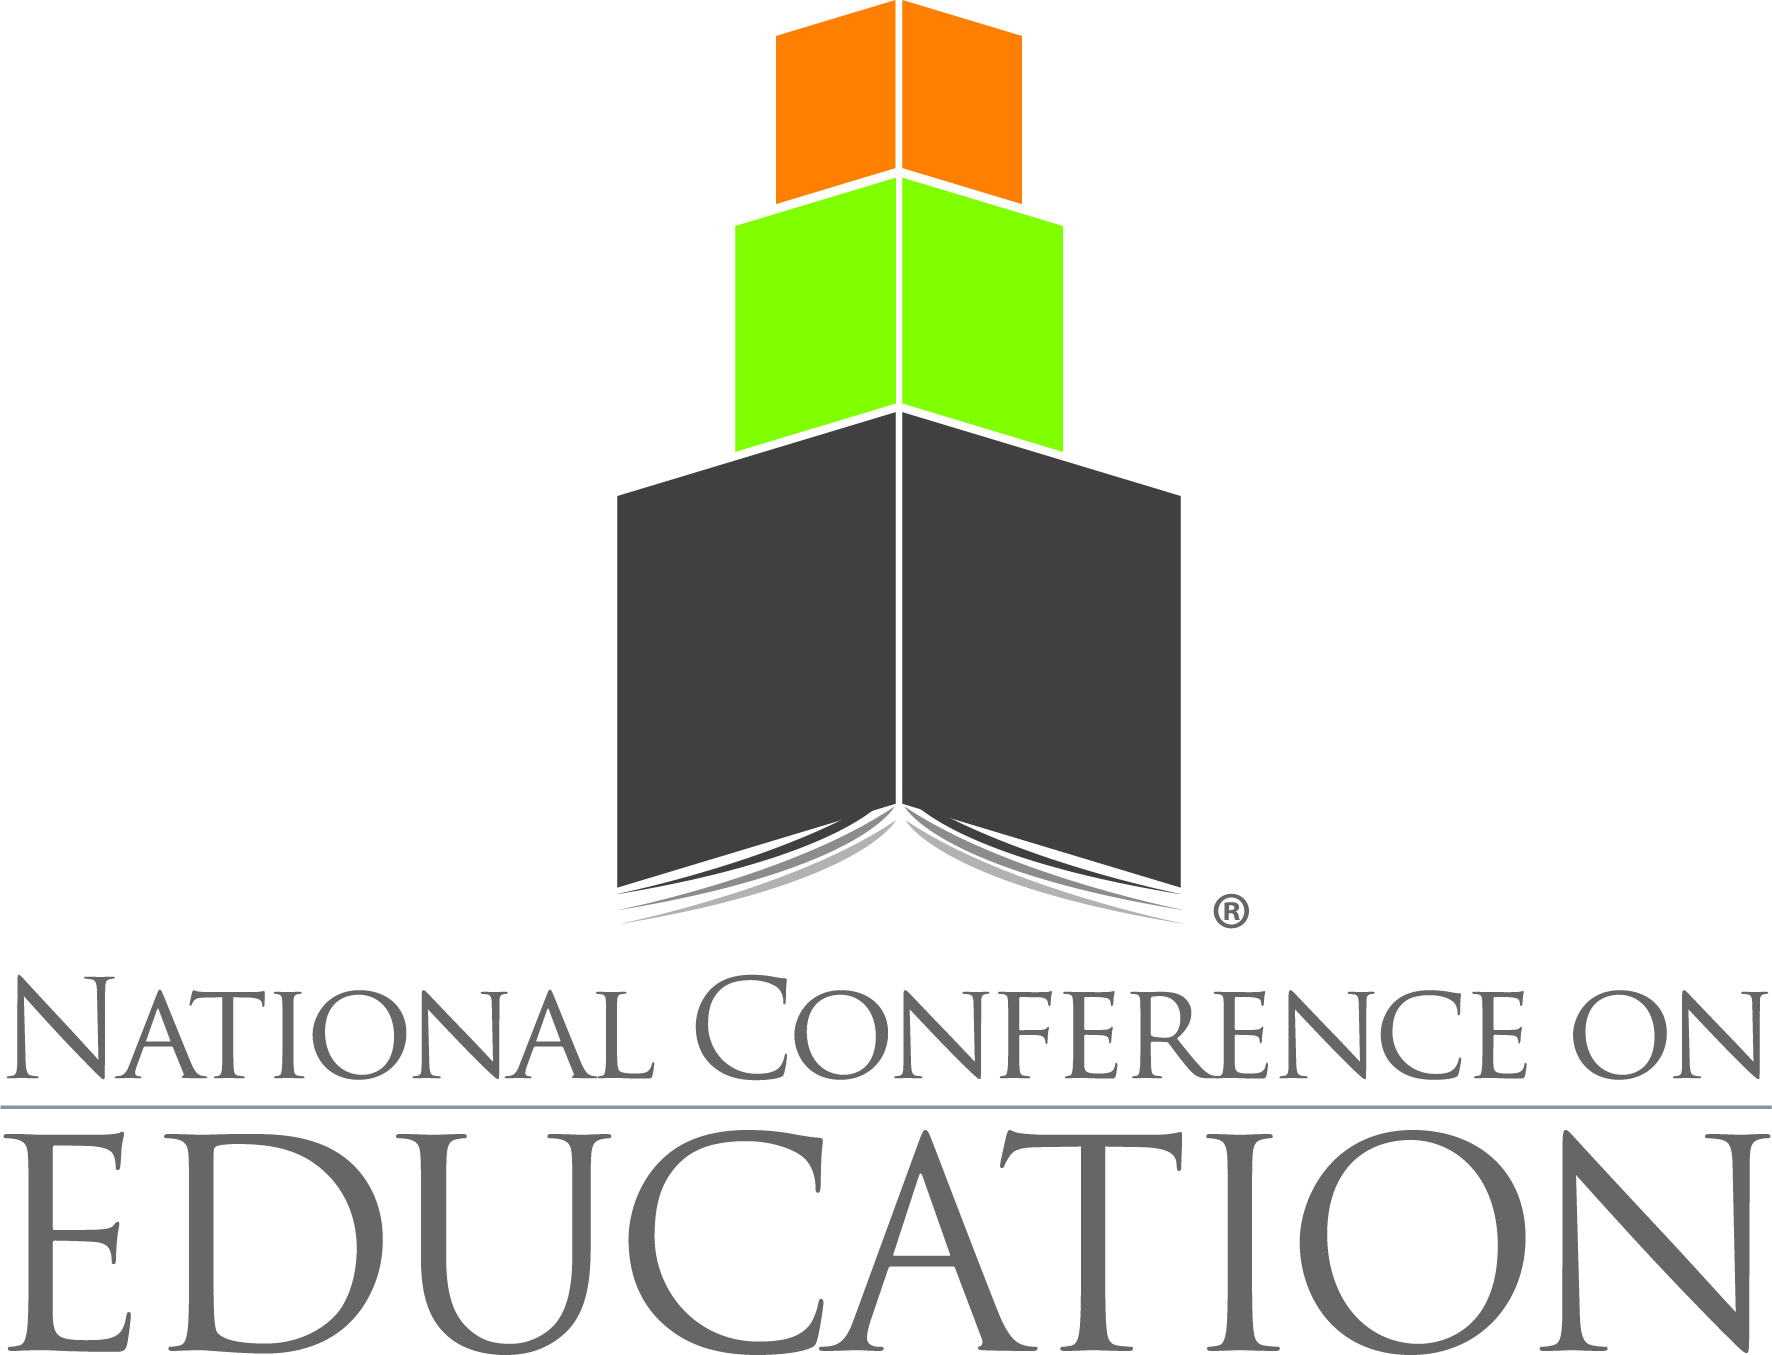 National Conference on Education   Presented by AASA